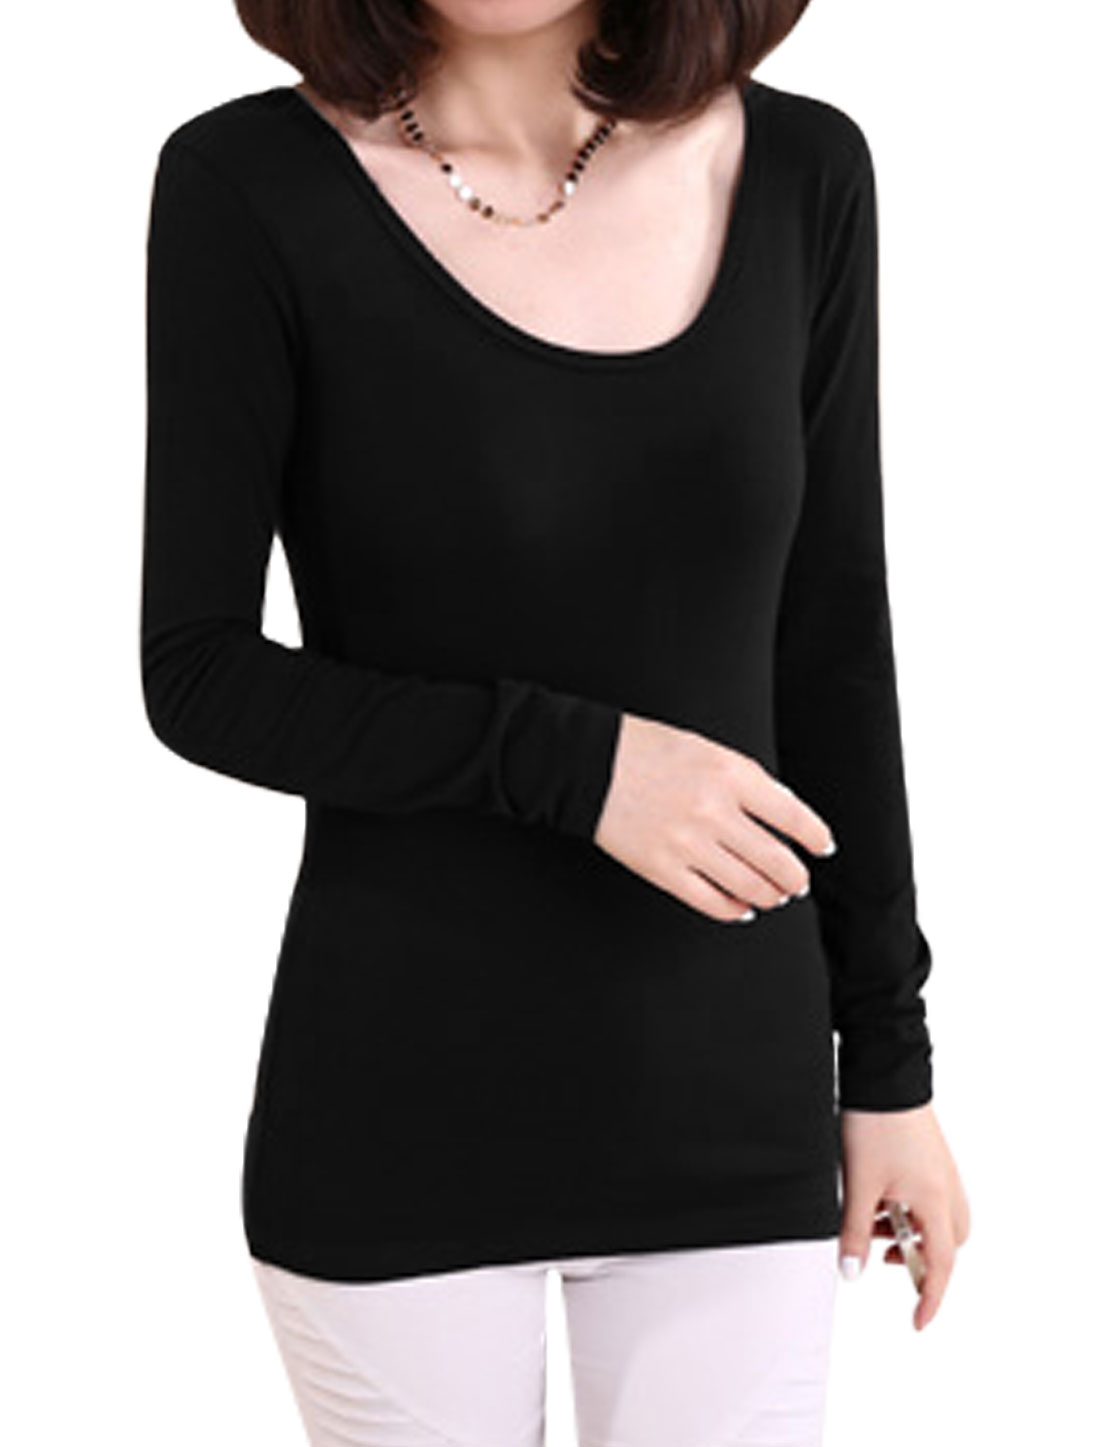 Ladies Black Slipover Lace Up Back Full Sleeves Leisure Top M